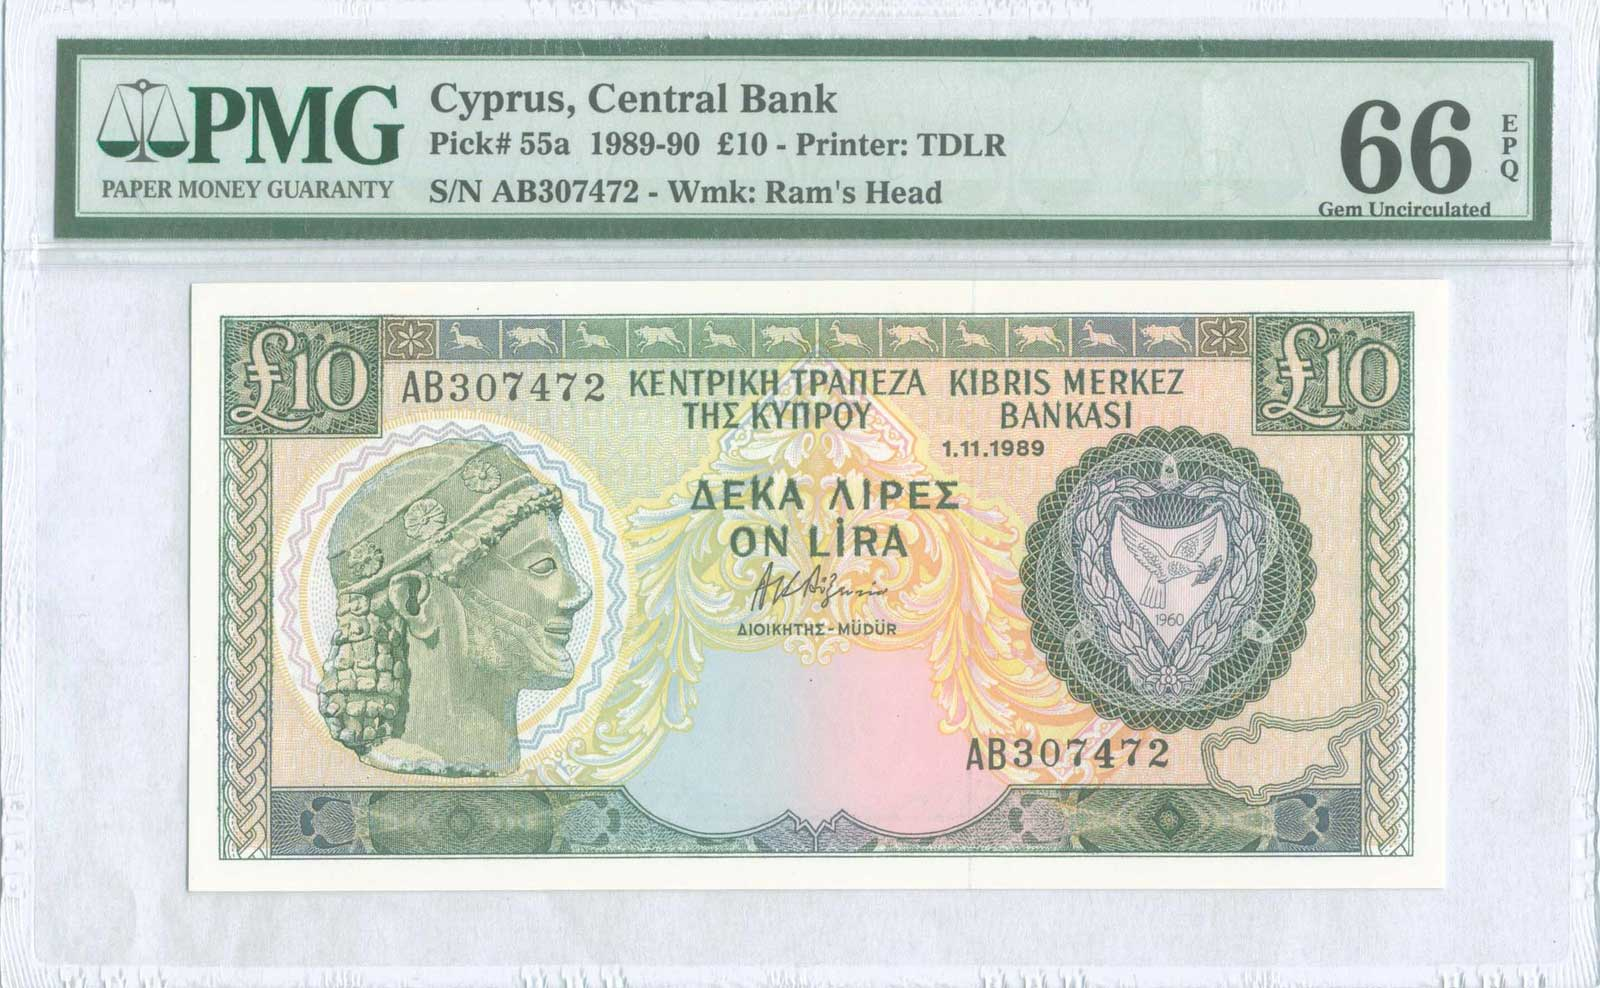 Lot 6371 - CYPRUS-  PAPER MONEY - BANKNOTES banknotes of cyprus -  A. Karamitsos Public & LIVE Bid Auction 588 Coins, Medals & Banknotes